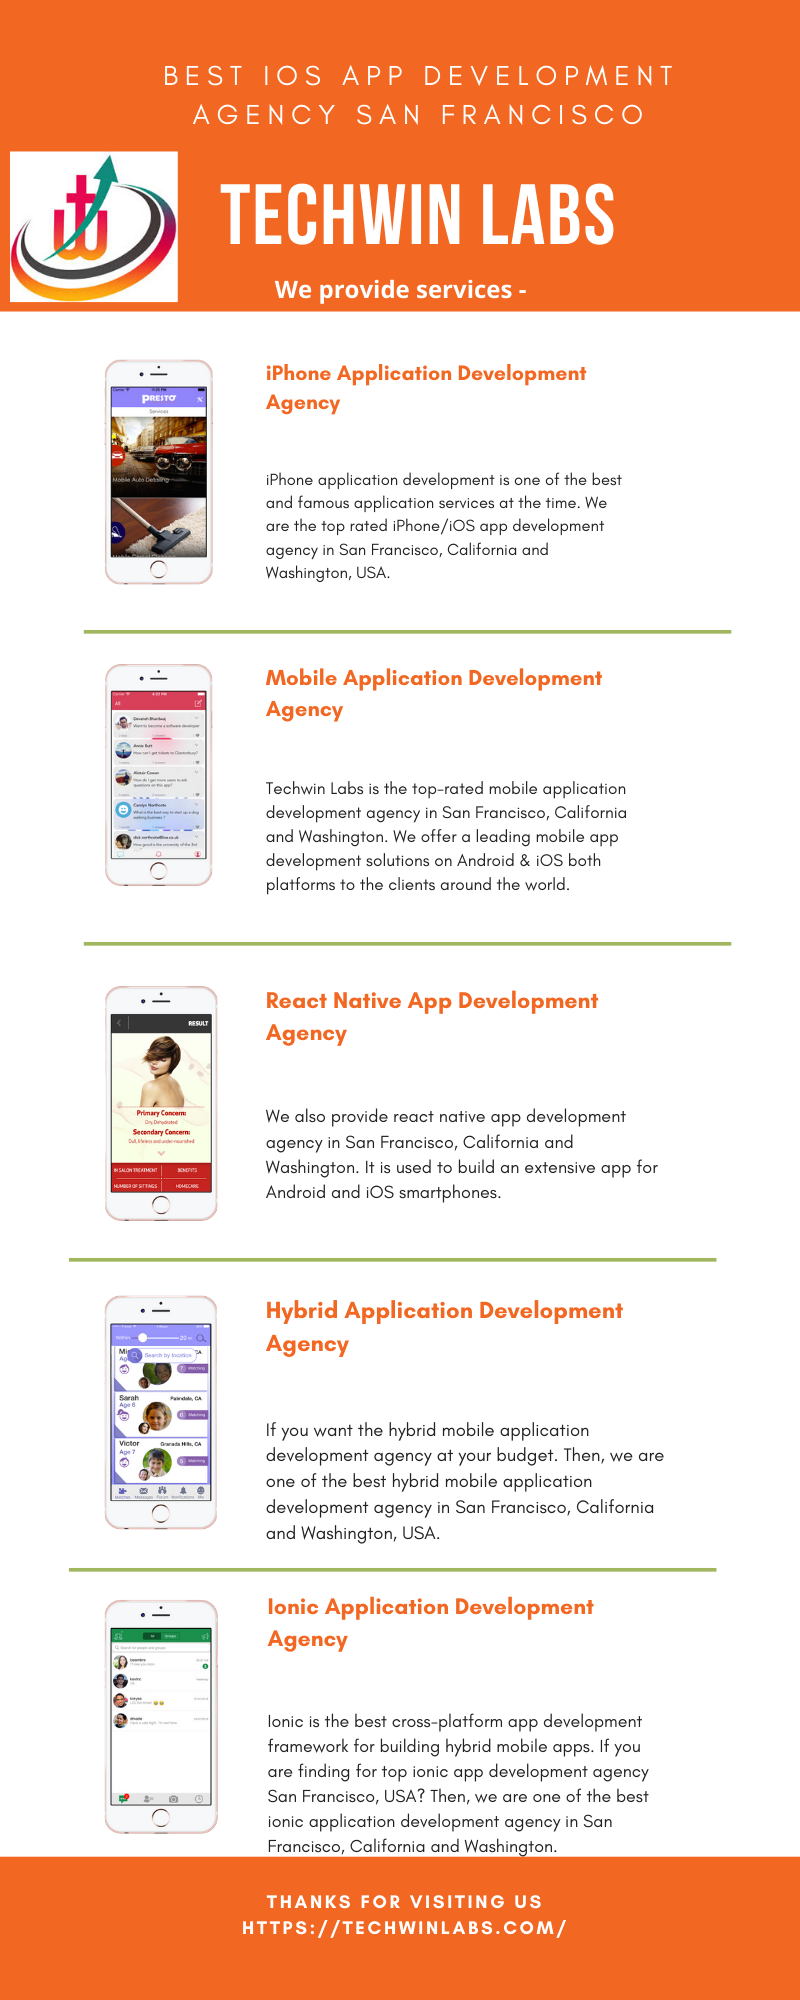 Best iOS App Development Agency San Francisco, California & Washington | Techwin Labs